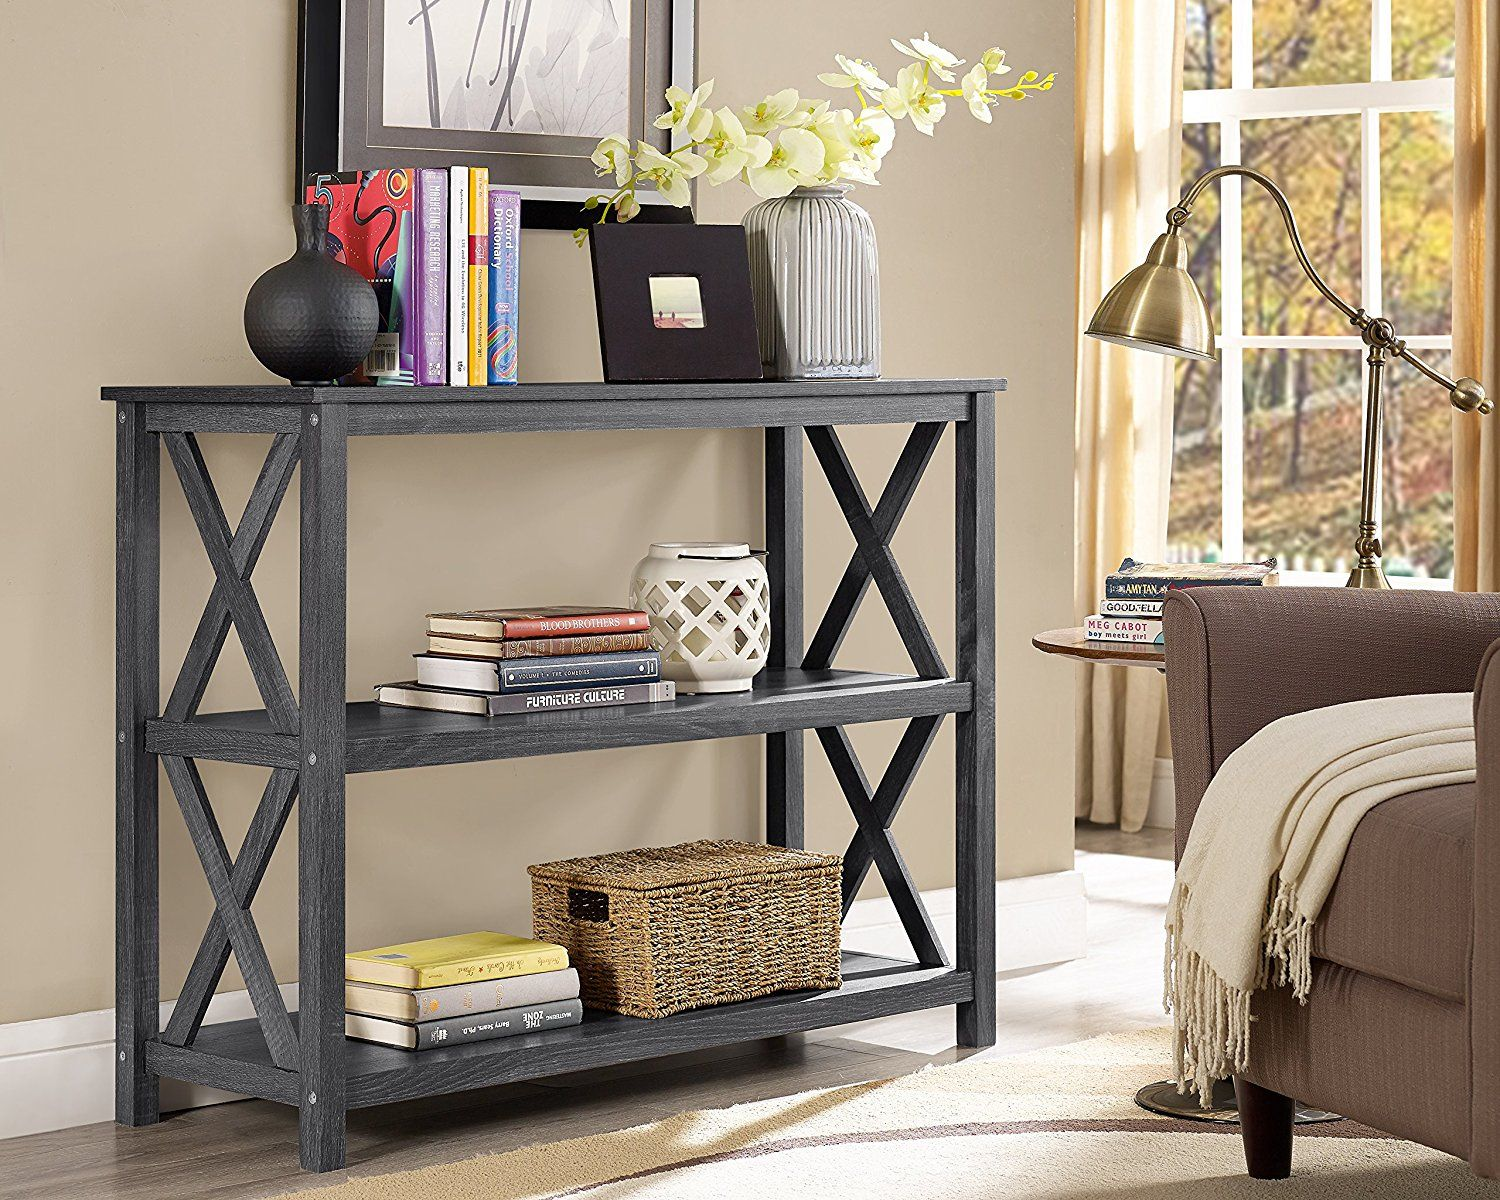 Superb Amazon.com: Weathered Grey 3 Tier Occasional Console Sofa Table Bookshelf:  Kitchen